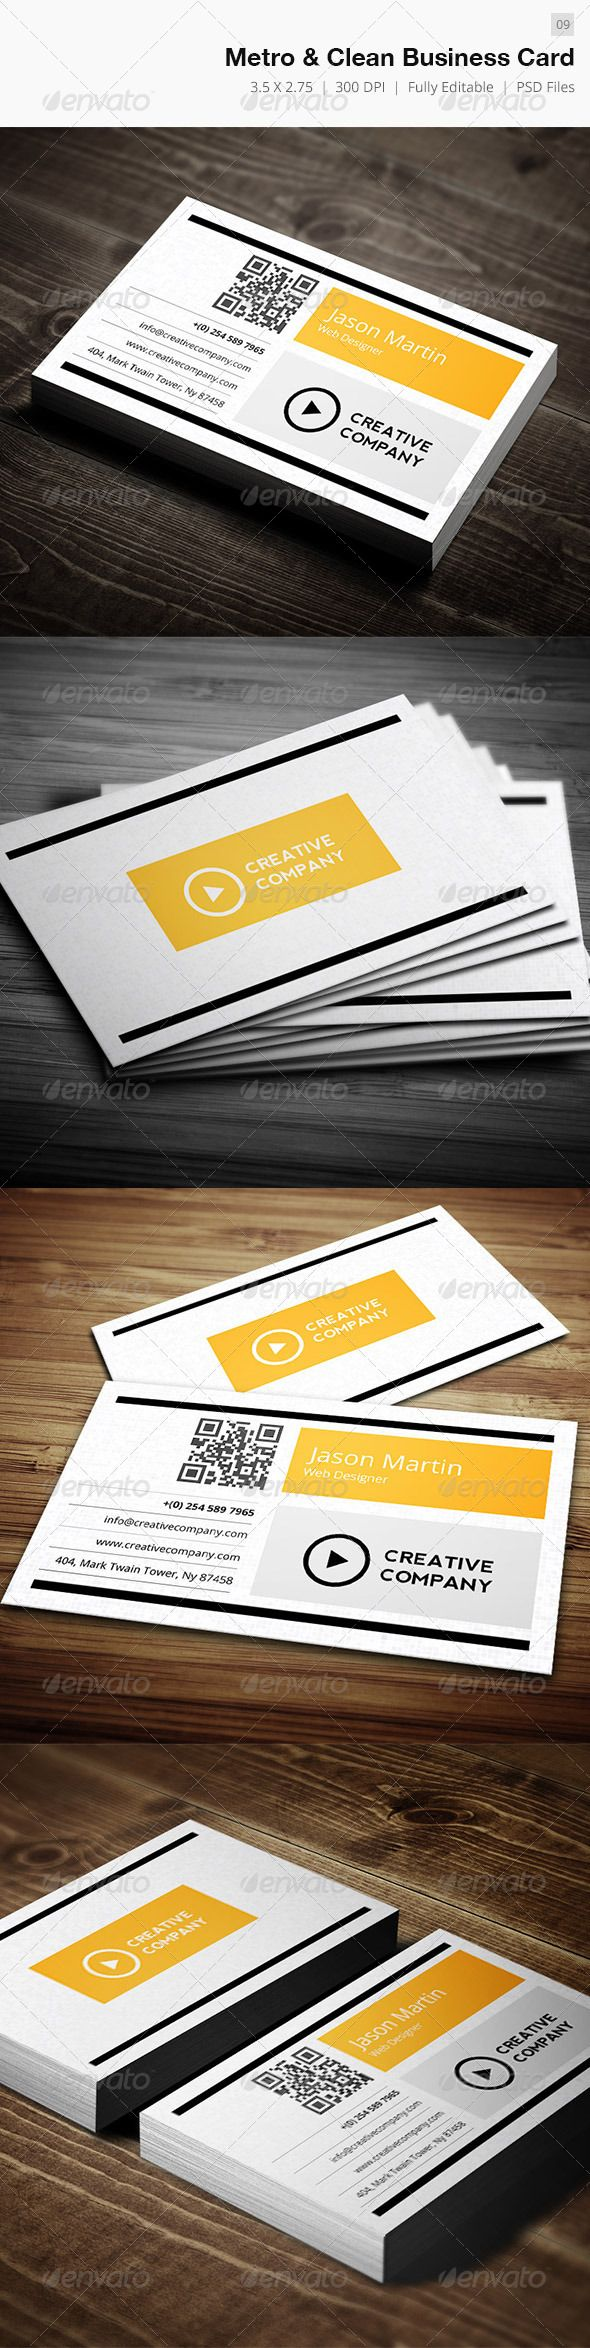 cool executive search headhunter and employment agency business executive search headhunter and employment agency business card samples check more at